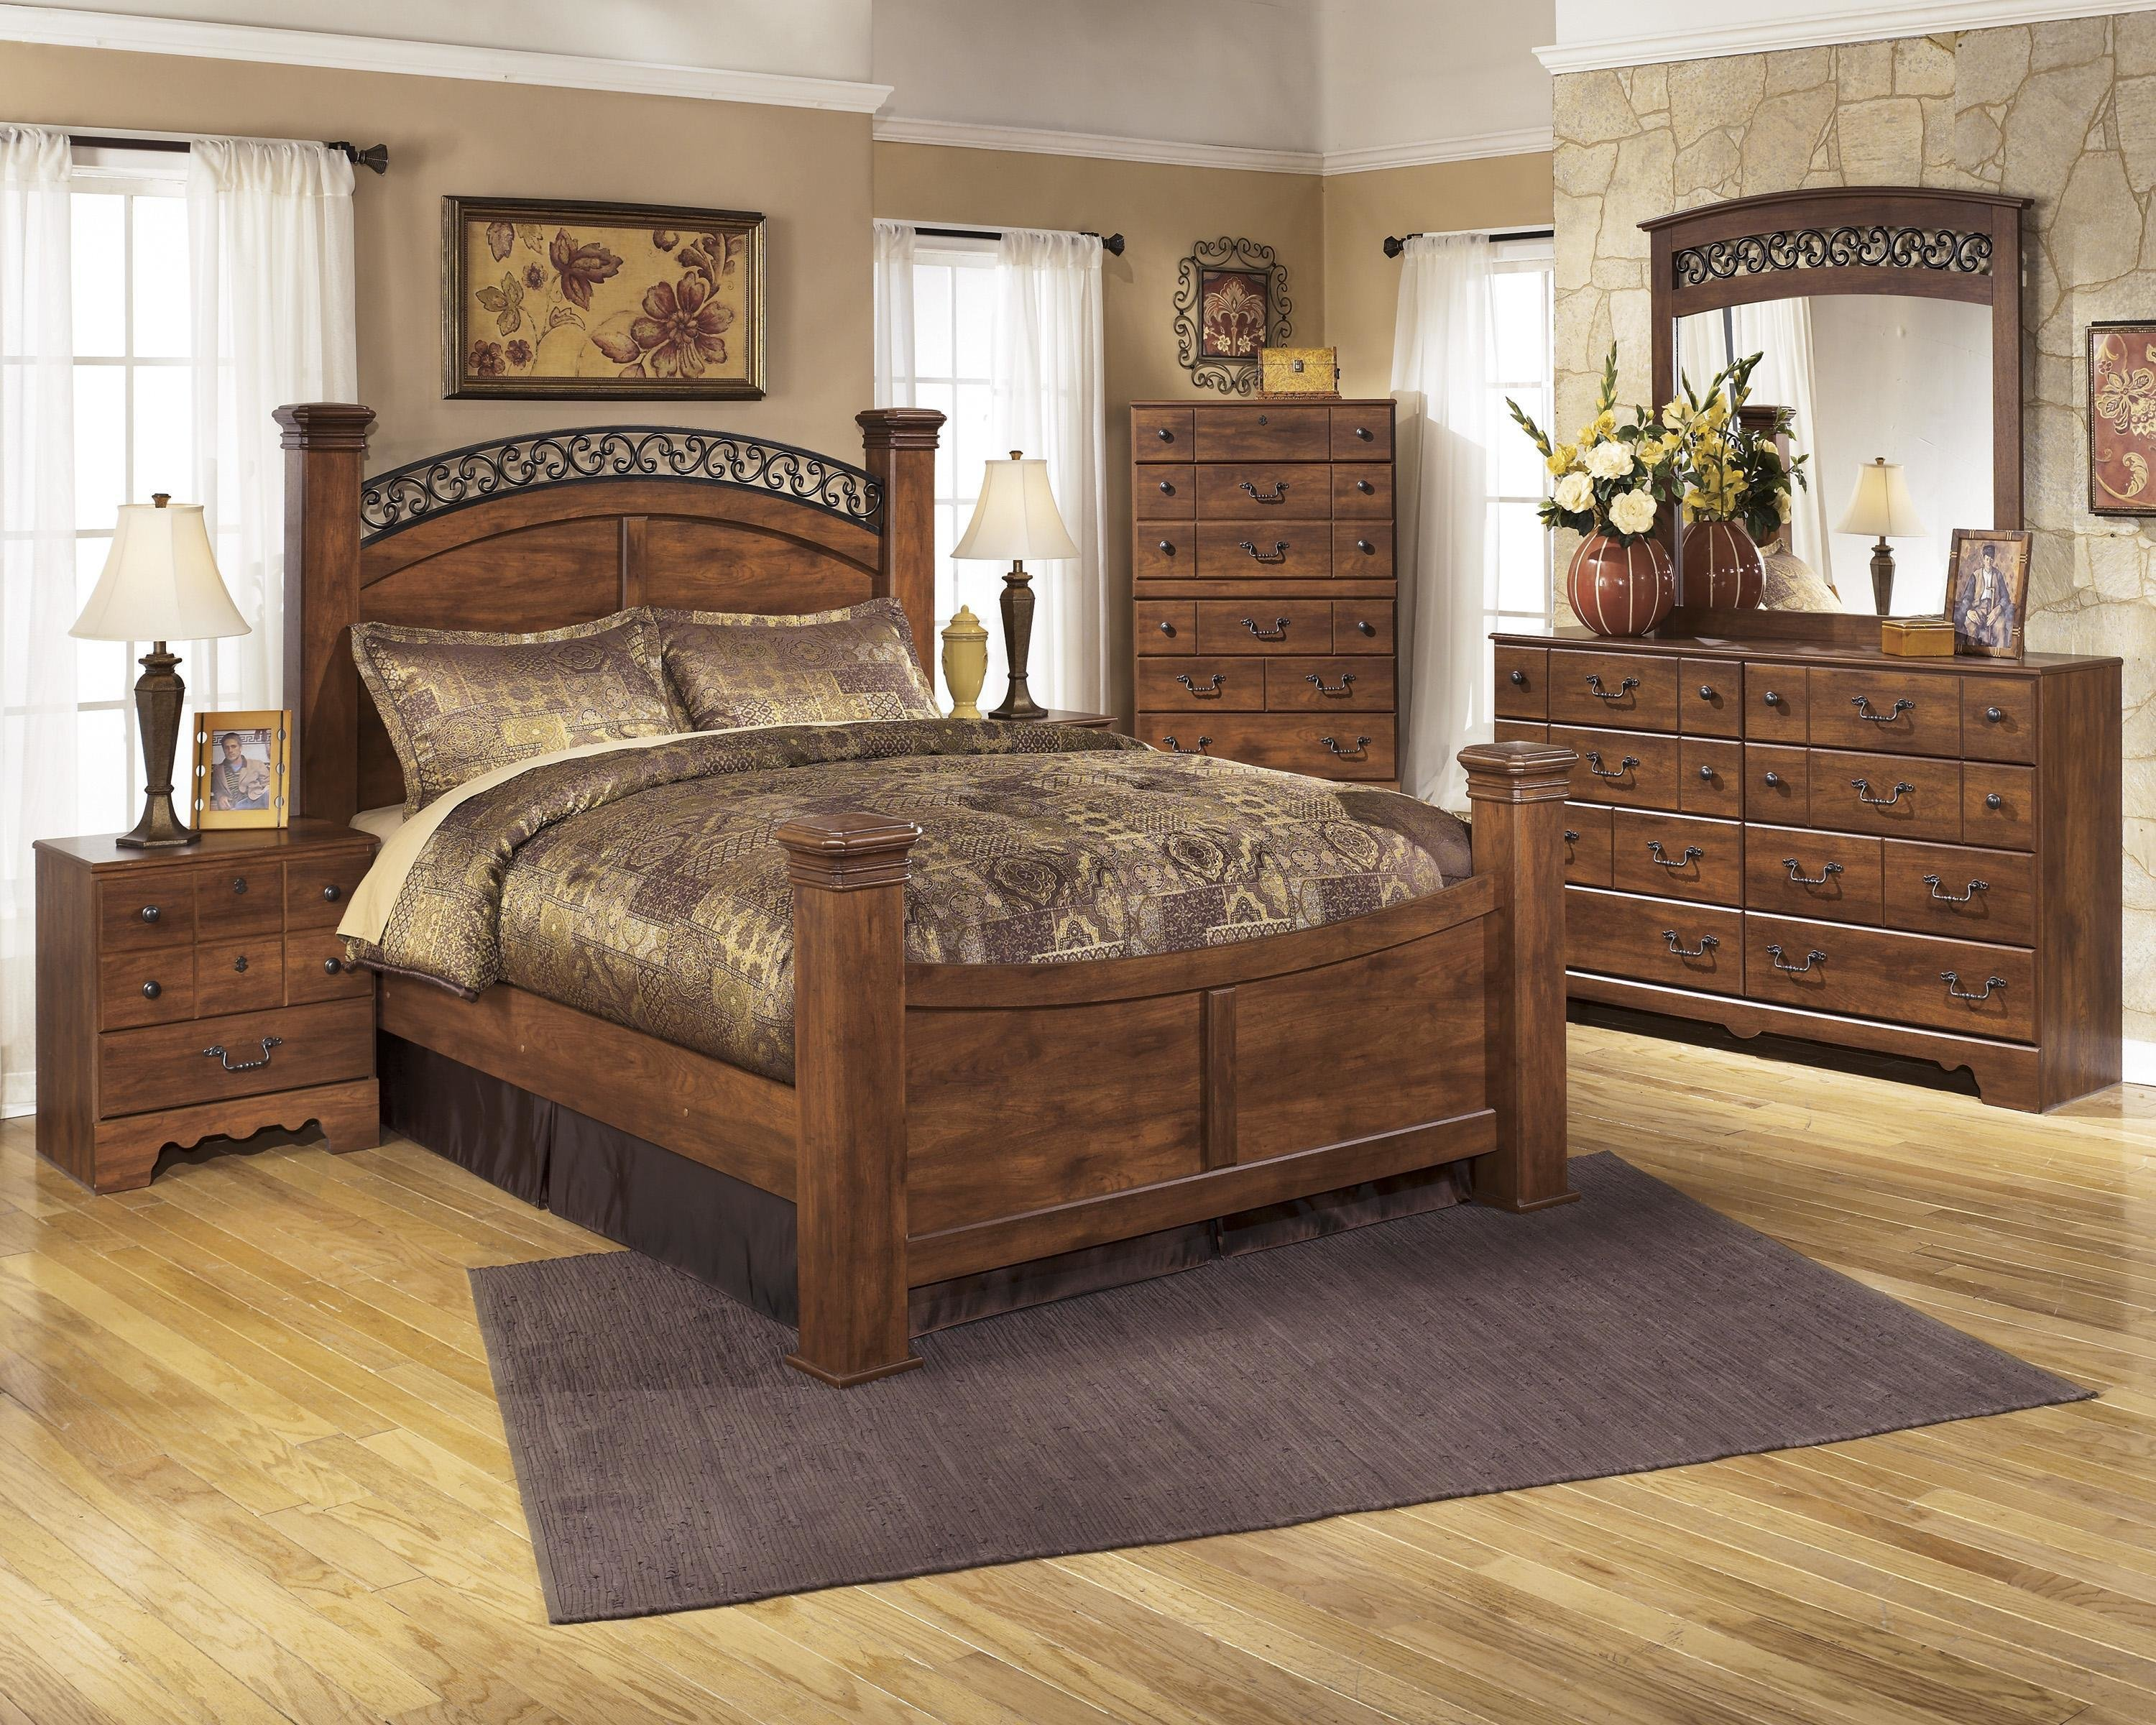 Best Signature Design By Ashley Timberline B258 Q Bedroom Group With Pictures